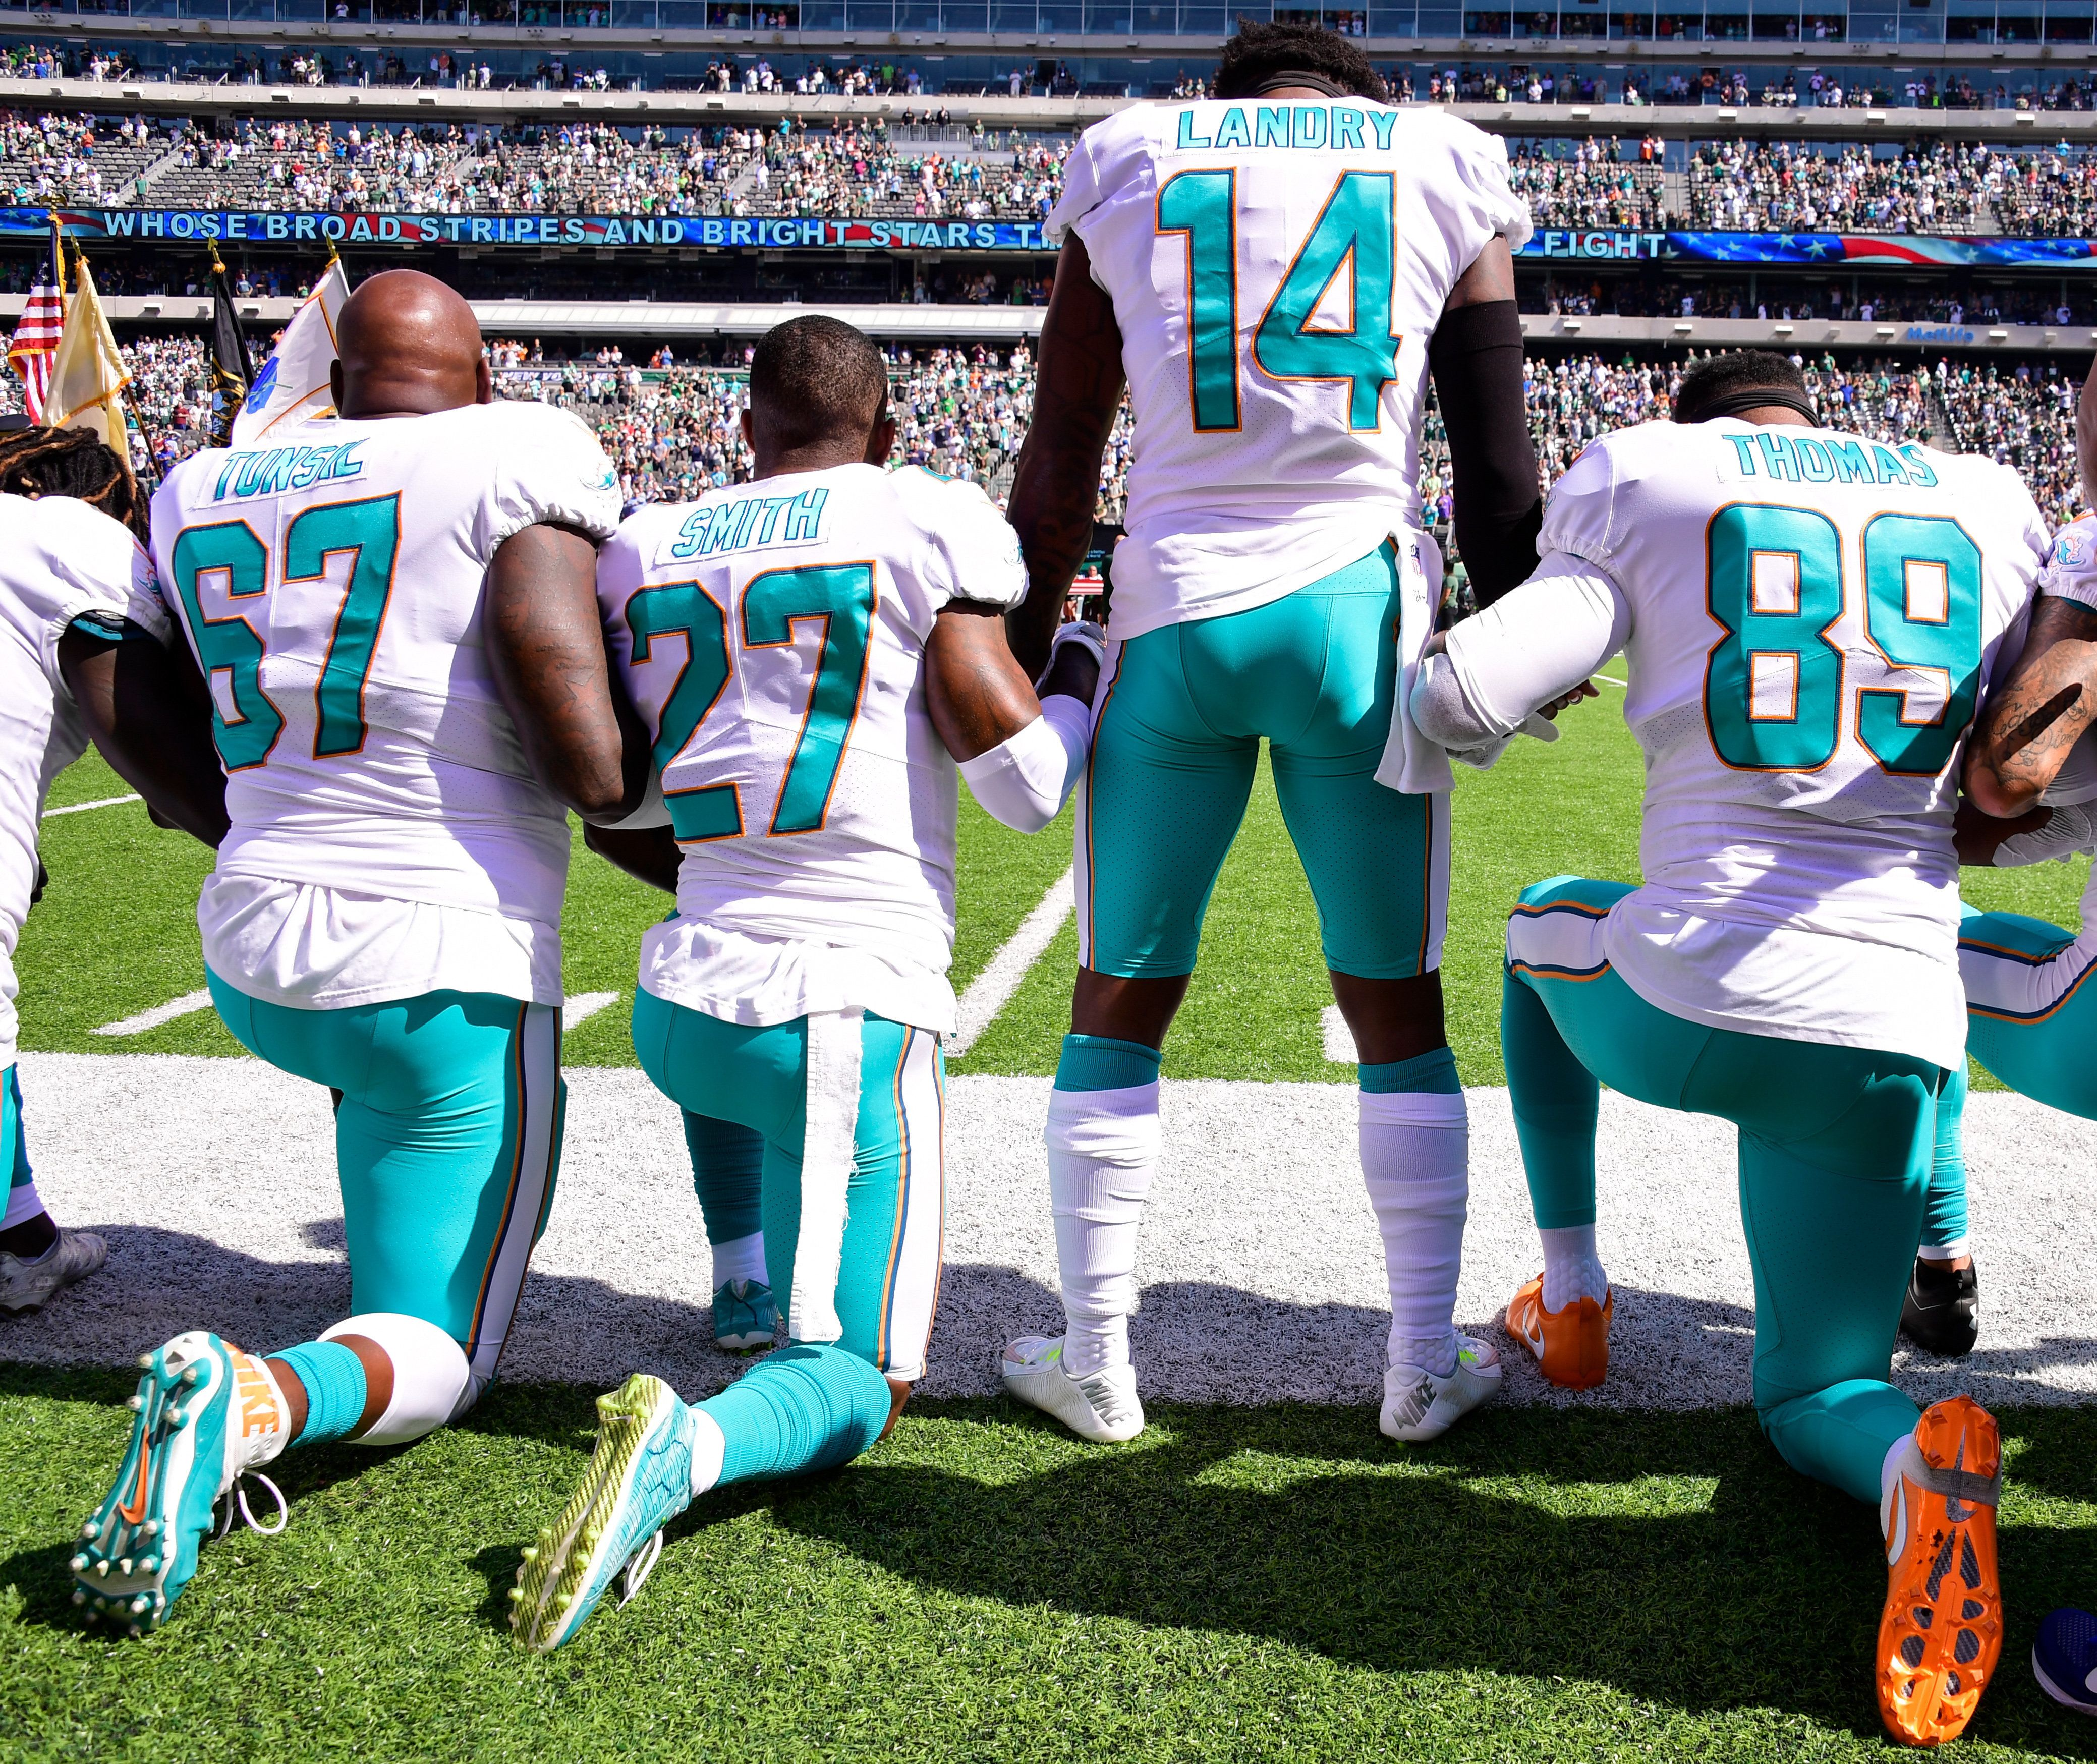 Miami Dolphins May Fine Or Suspend Players Who Kneel For Anthem Anthem Protest Nfl National Anthem